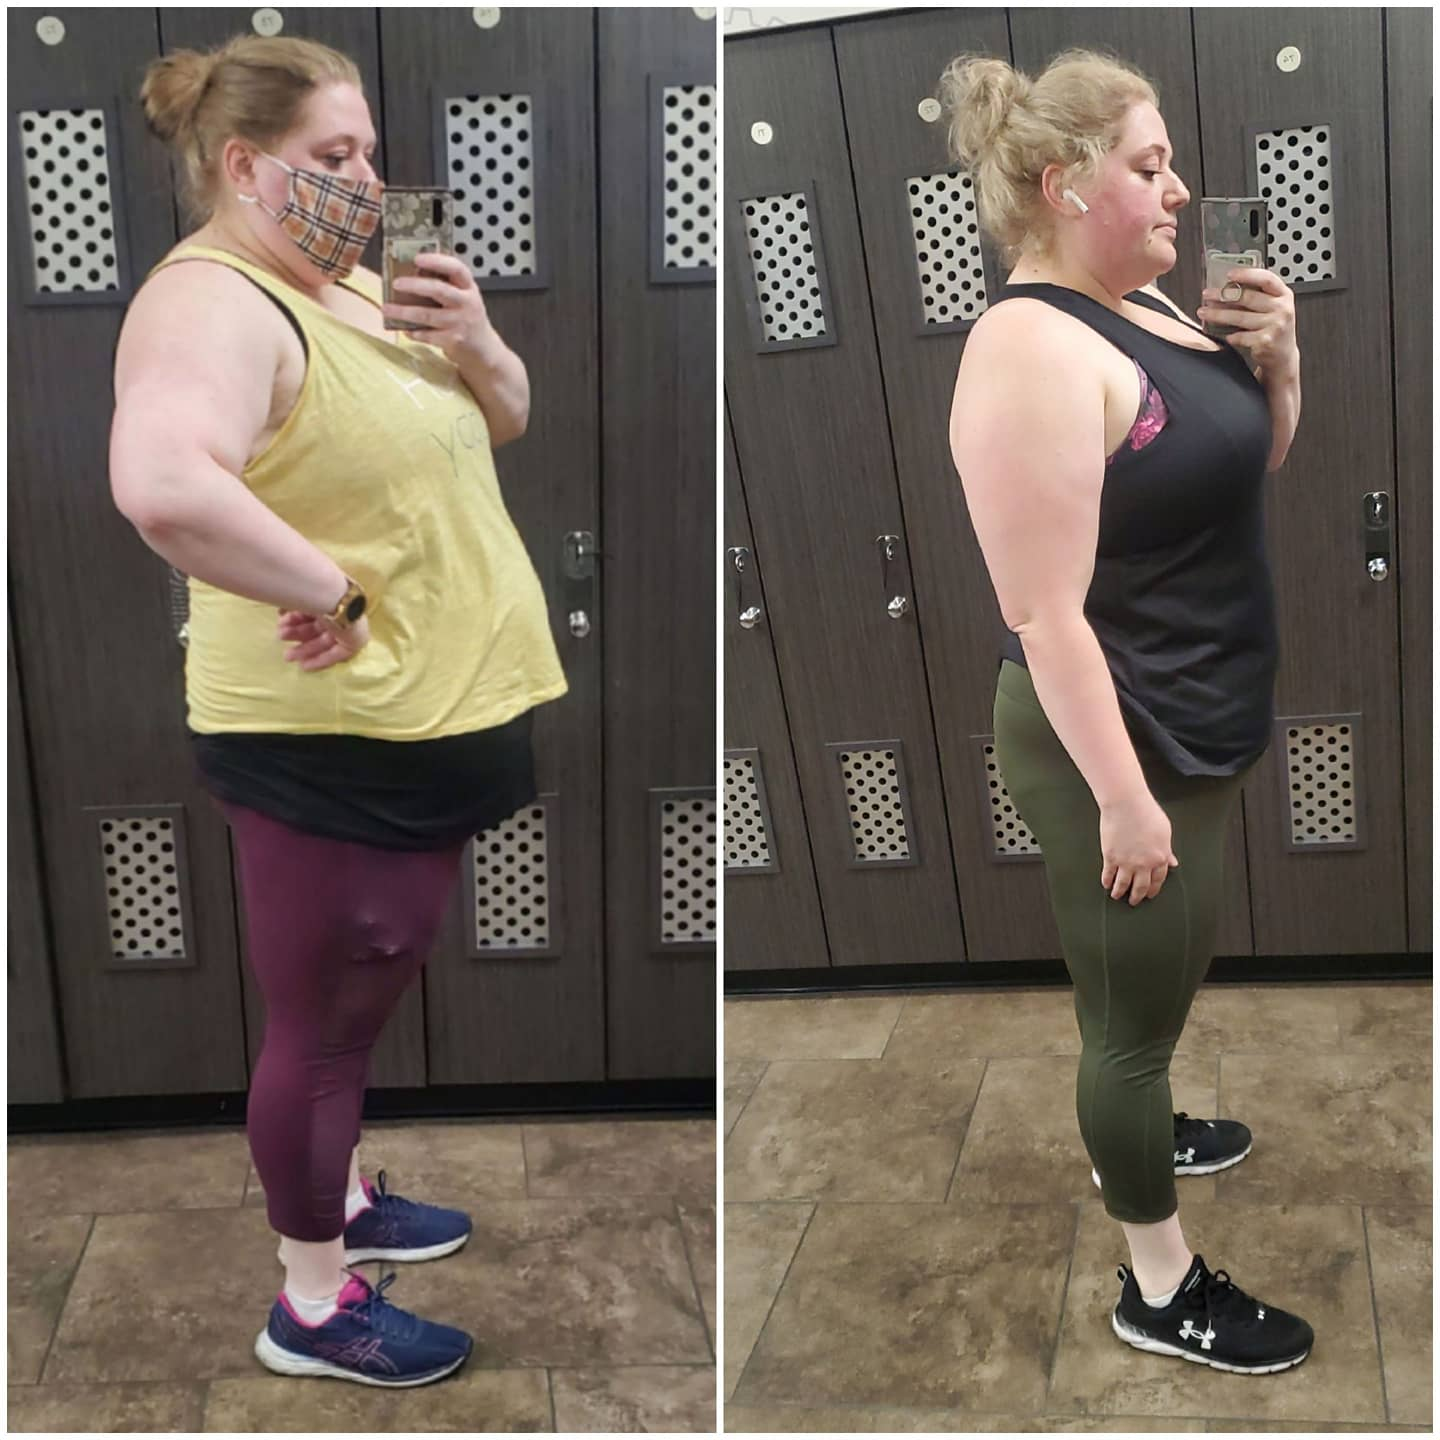 5'7 Female Before and After 75 lbs Weight Loss 325 lbs to 250 lbs